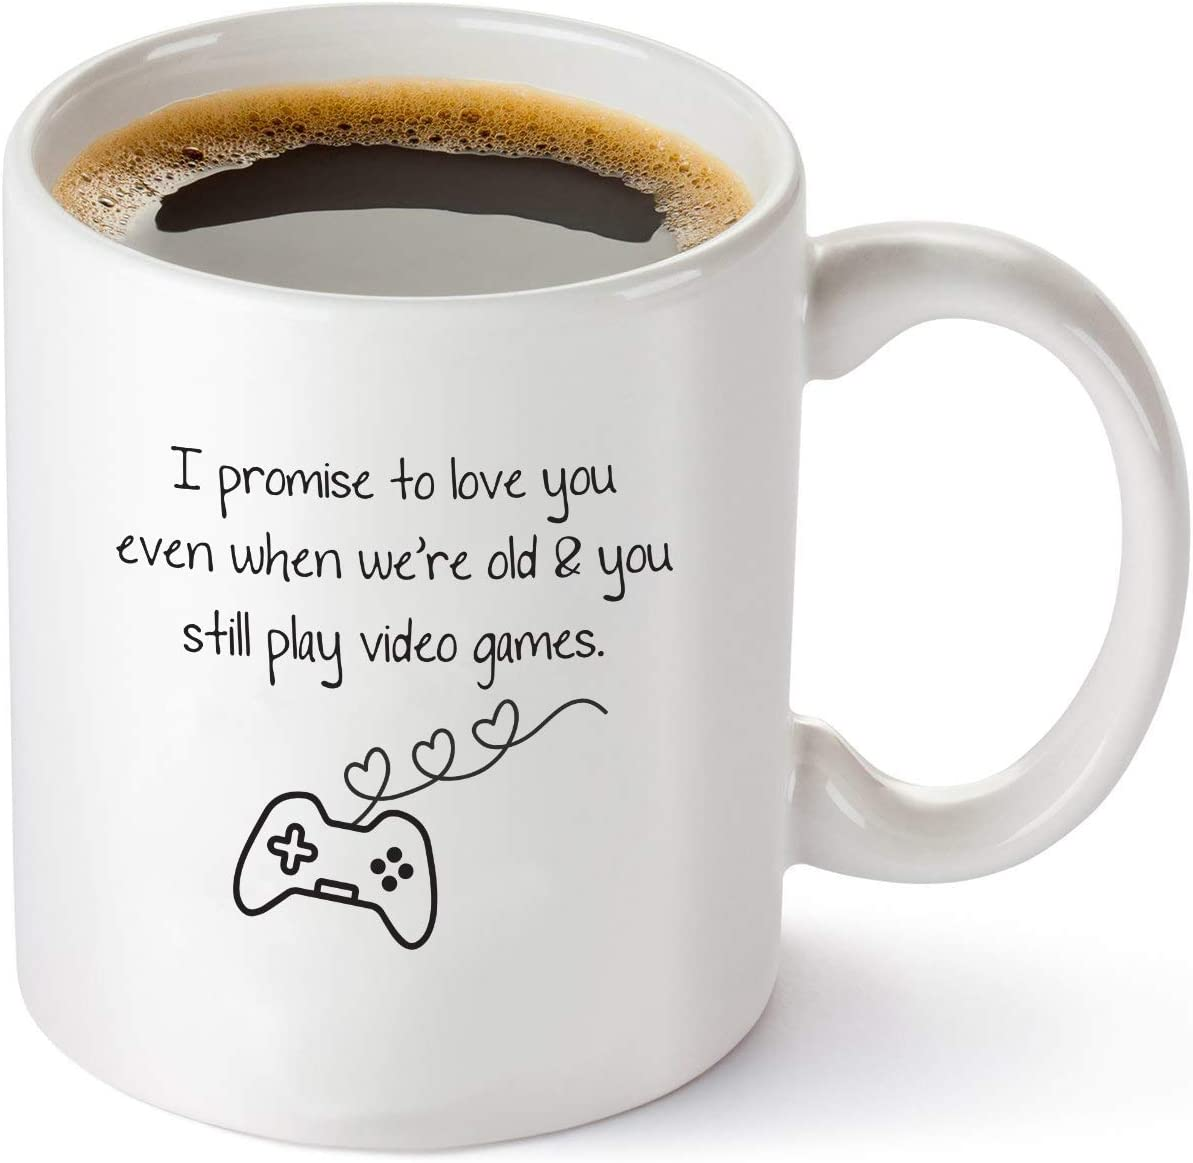 I Promise To Love You When We're Old and You Still Play Video Games Coffee Mug – Funny Gamer Gifts for Him, Boyfriend, Husband - Unique Birthday or Wedding Gift Idea for Men - 11 oz Tea Cup White